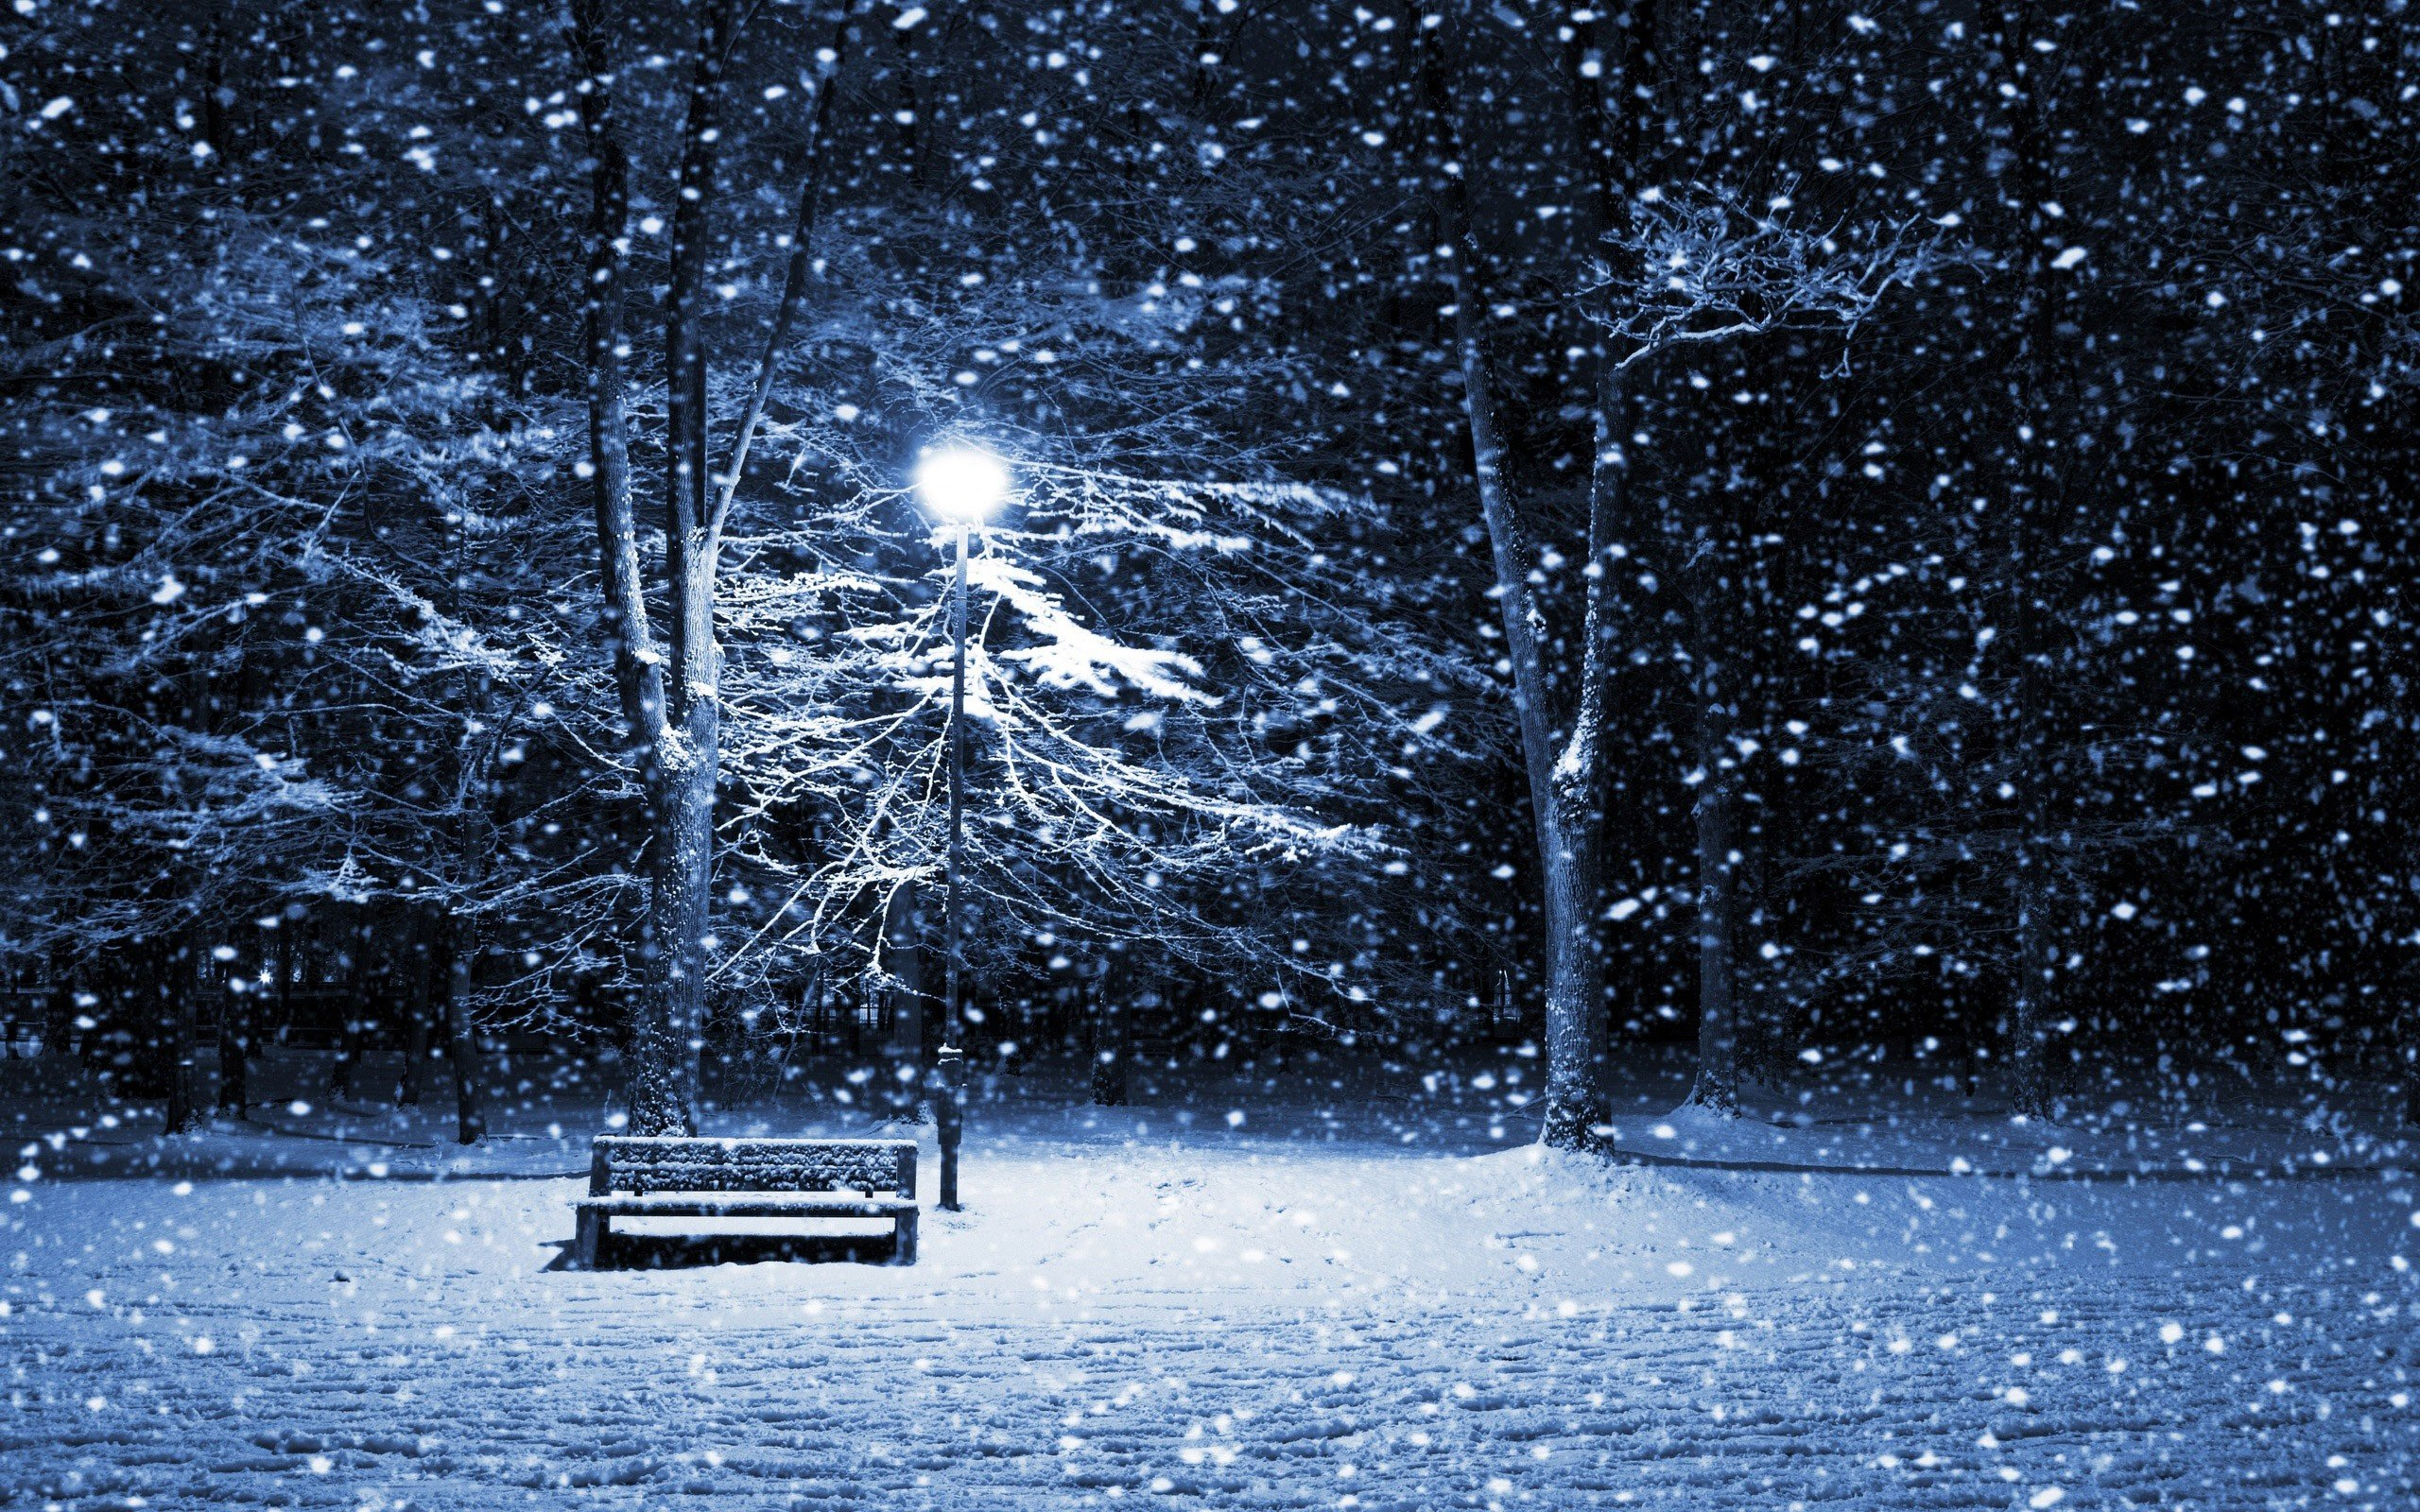 Storm Desktop Wallpapers Park Bench Snow Storm Desktop Backgrounds 2560x1600